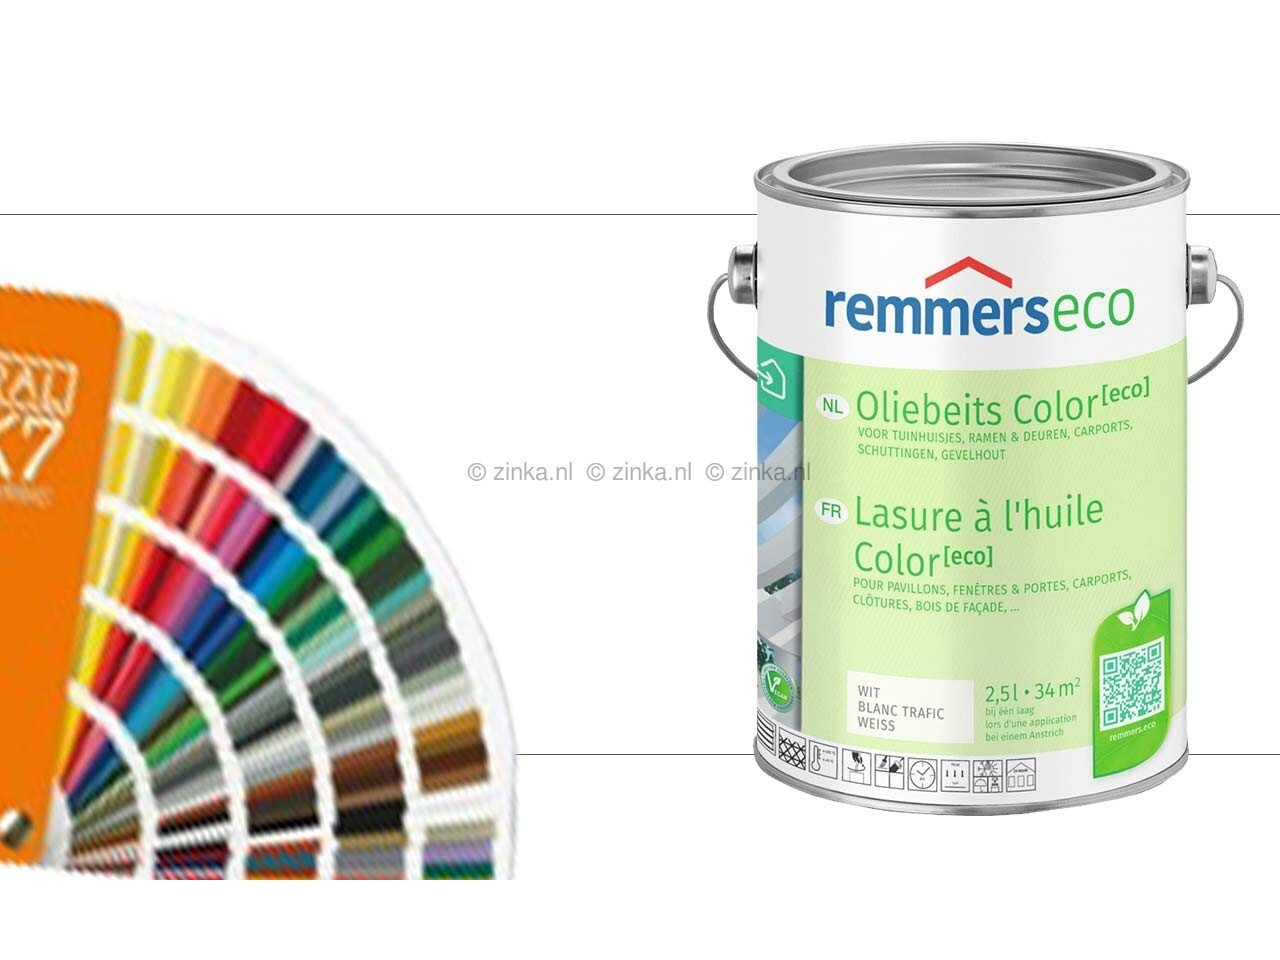 Oliebeits Color Eco Ral